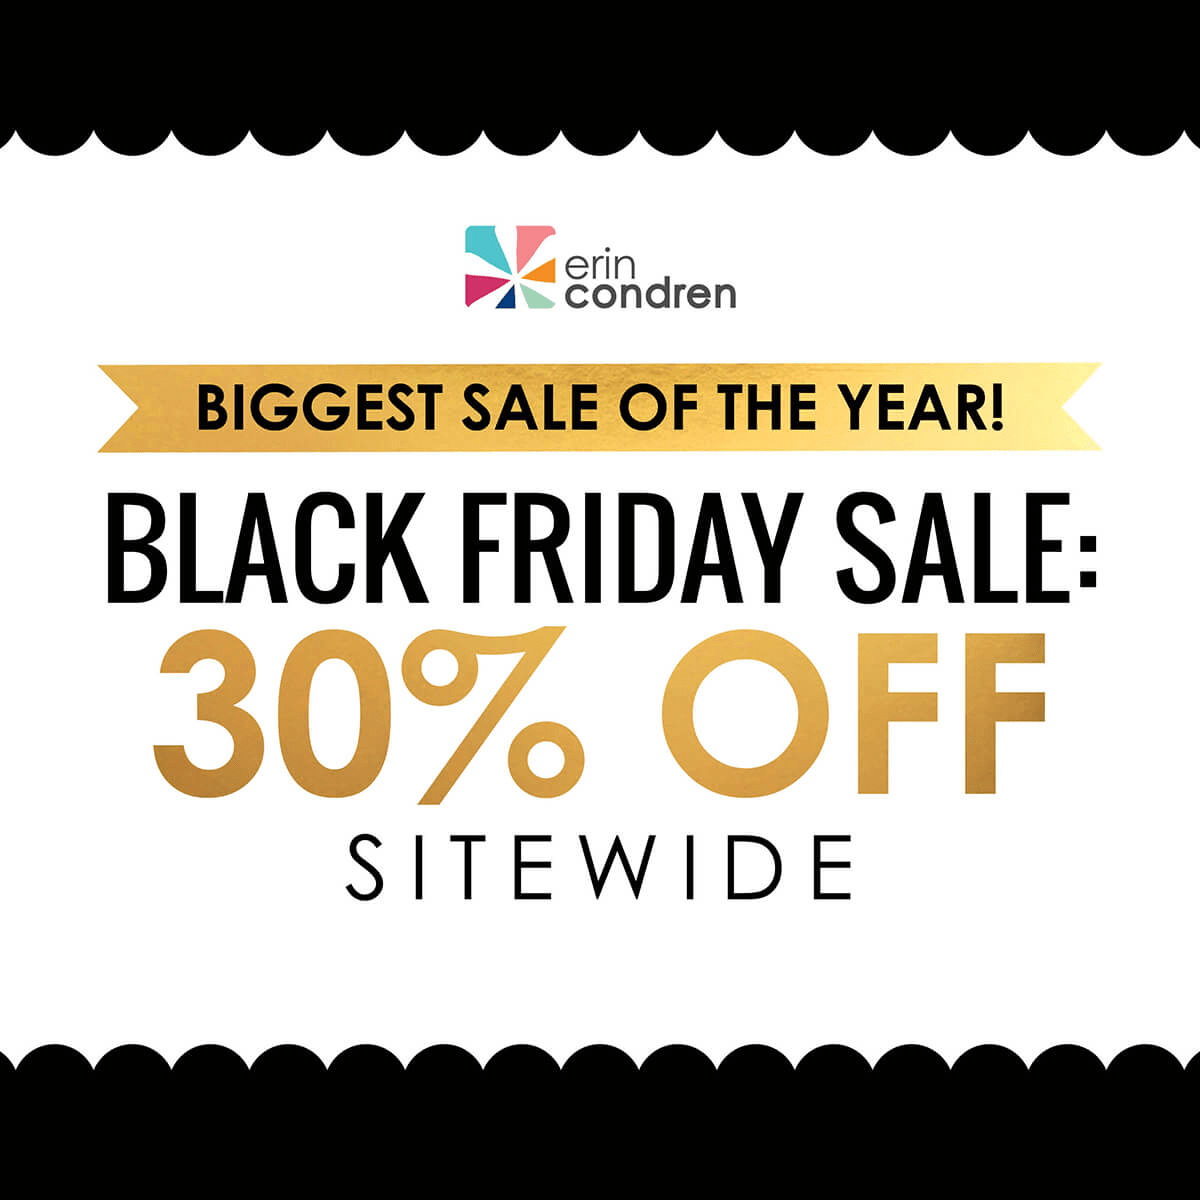 Erin Condren Black Friday 2018 Coupon: Get 30% Off Sitewide!